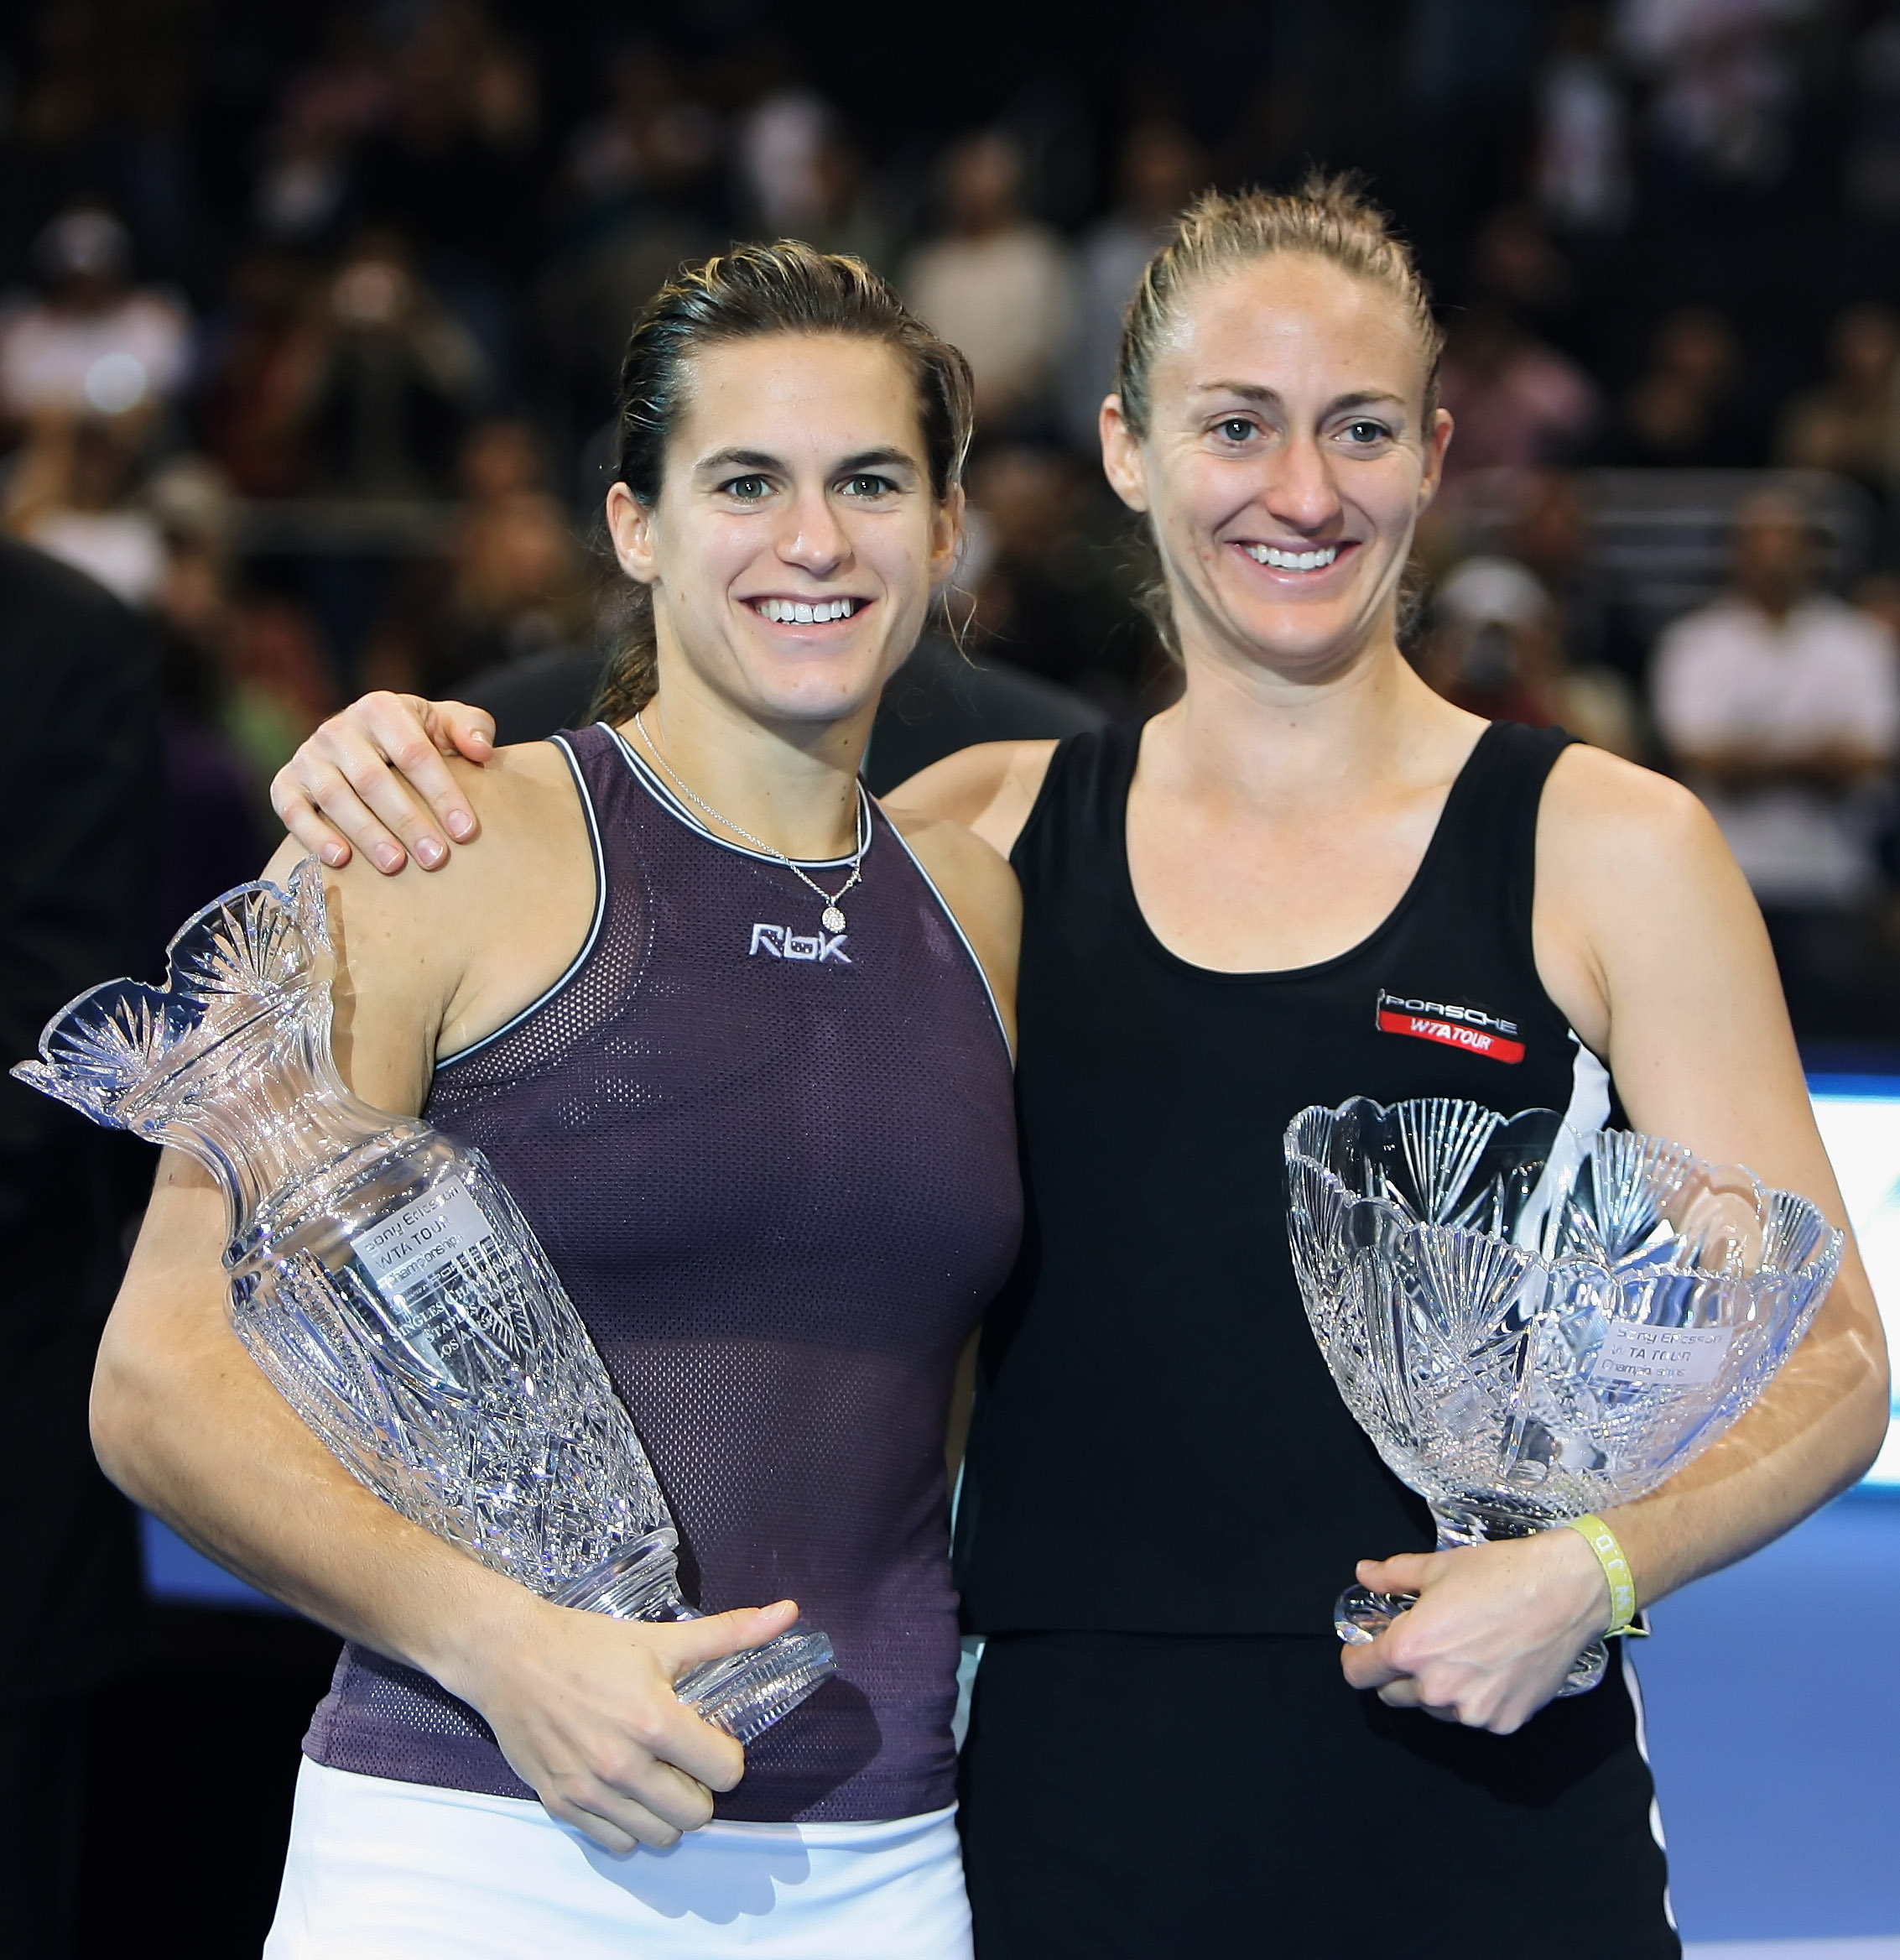 Amelie Mauresmo beats Mary Pierce in the first all-French final.